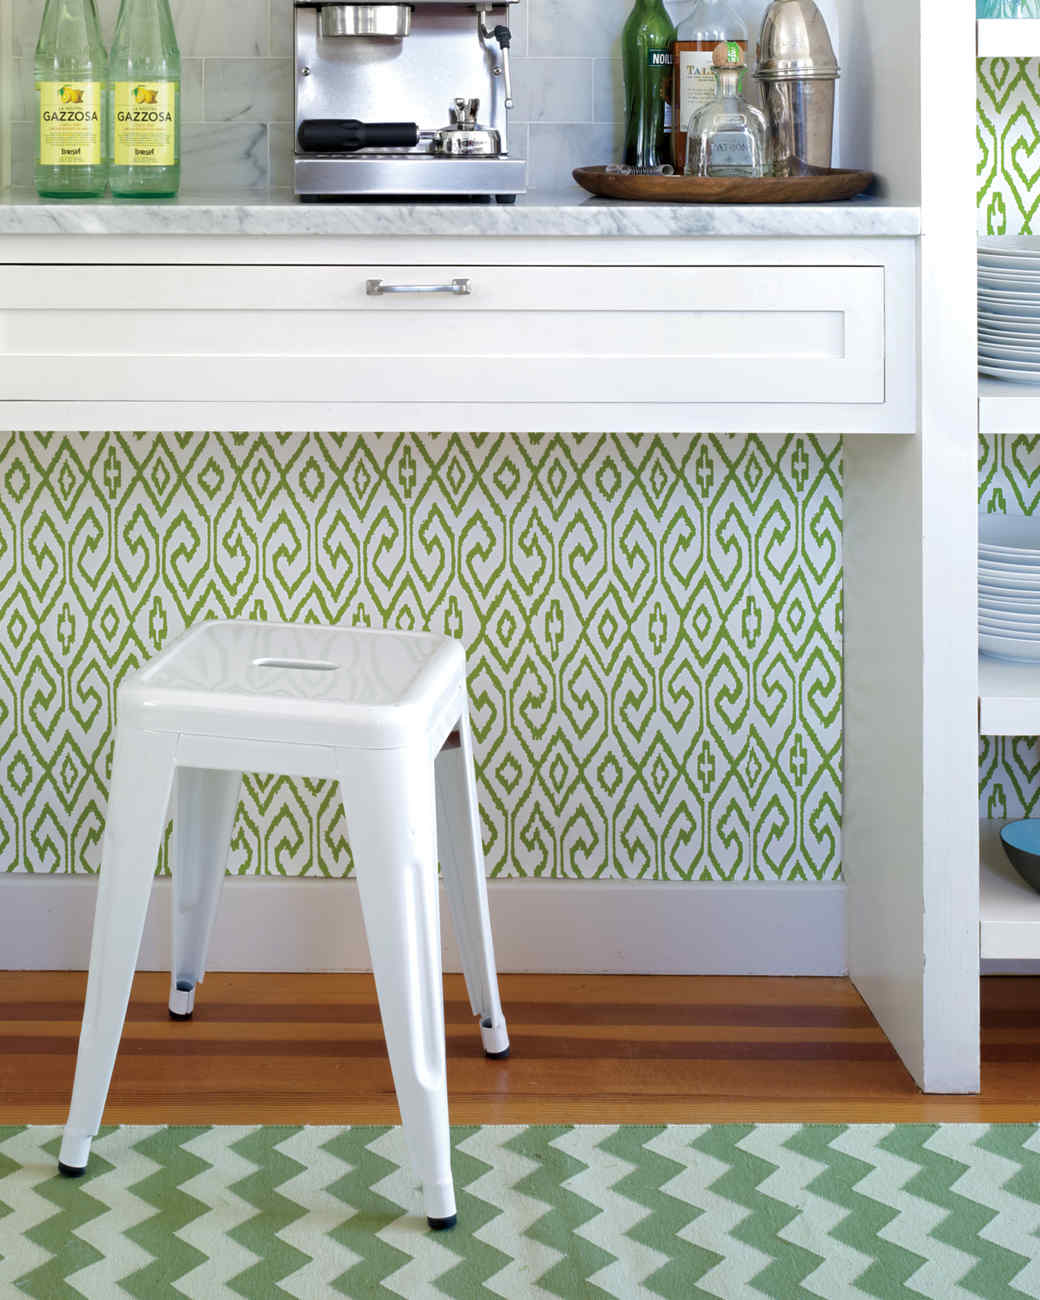 cw-mitchell-kitchen-stool-mld107949.jpg